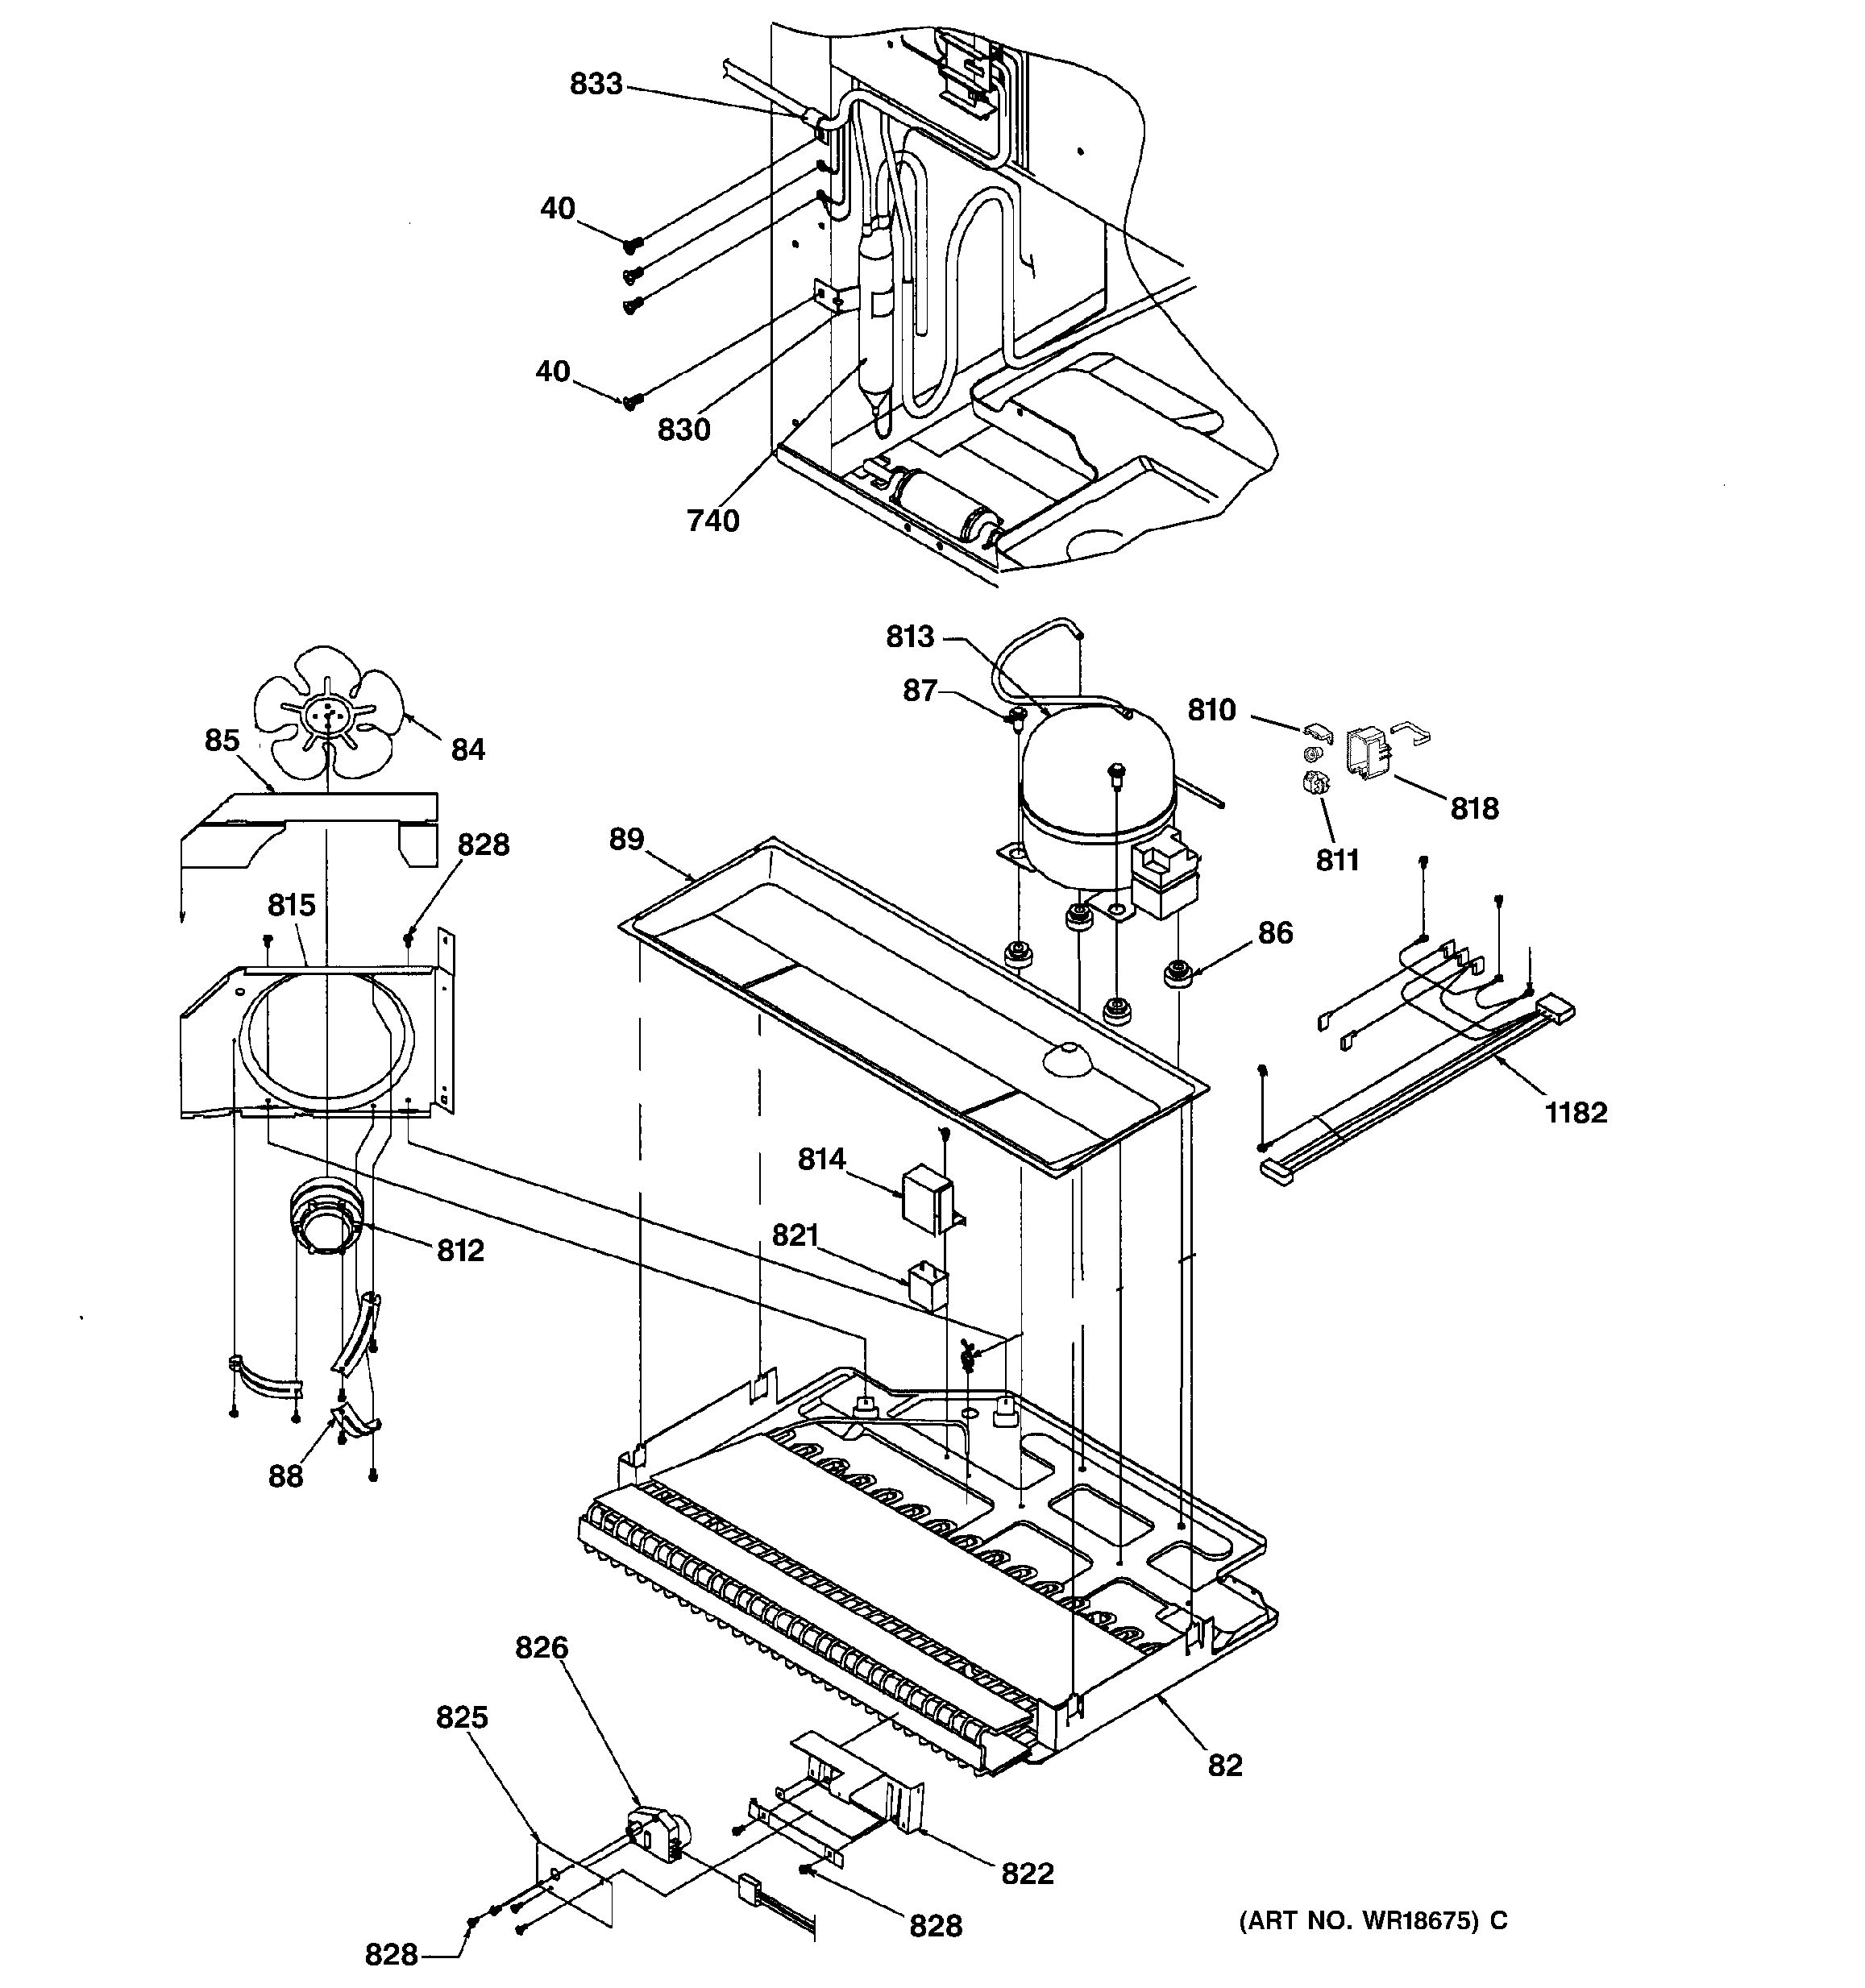 Assembly View For Machine Compartment Assembly